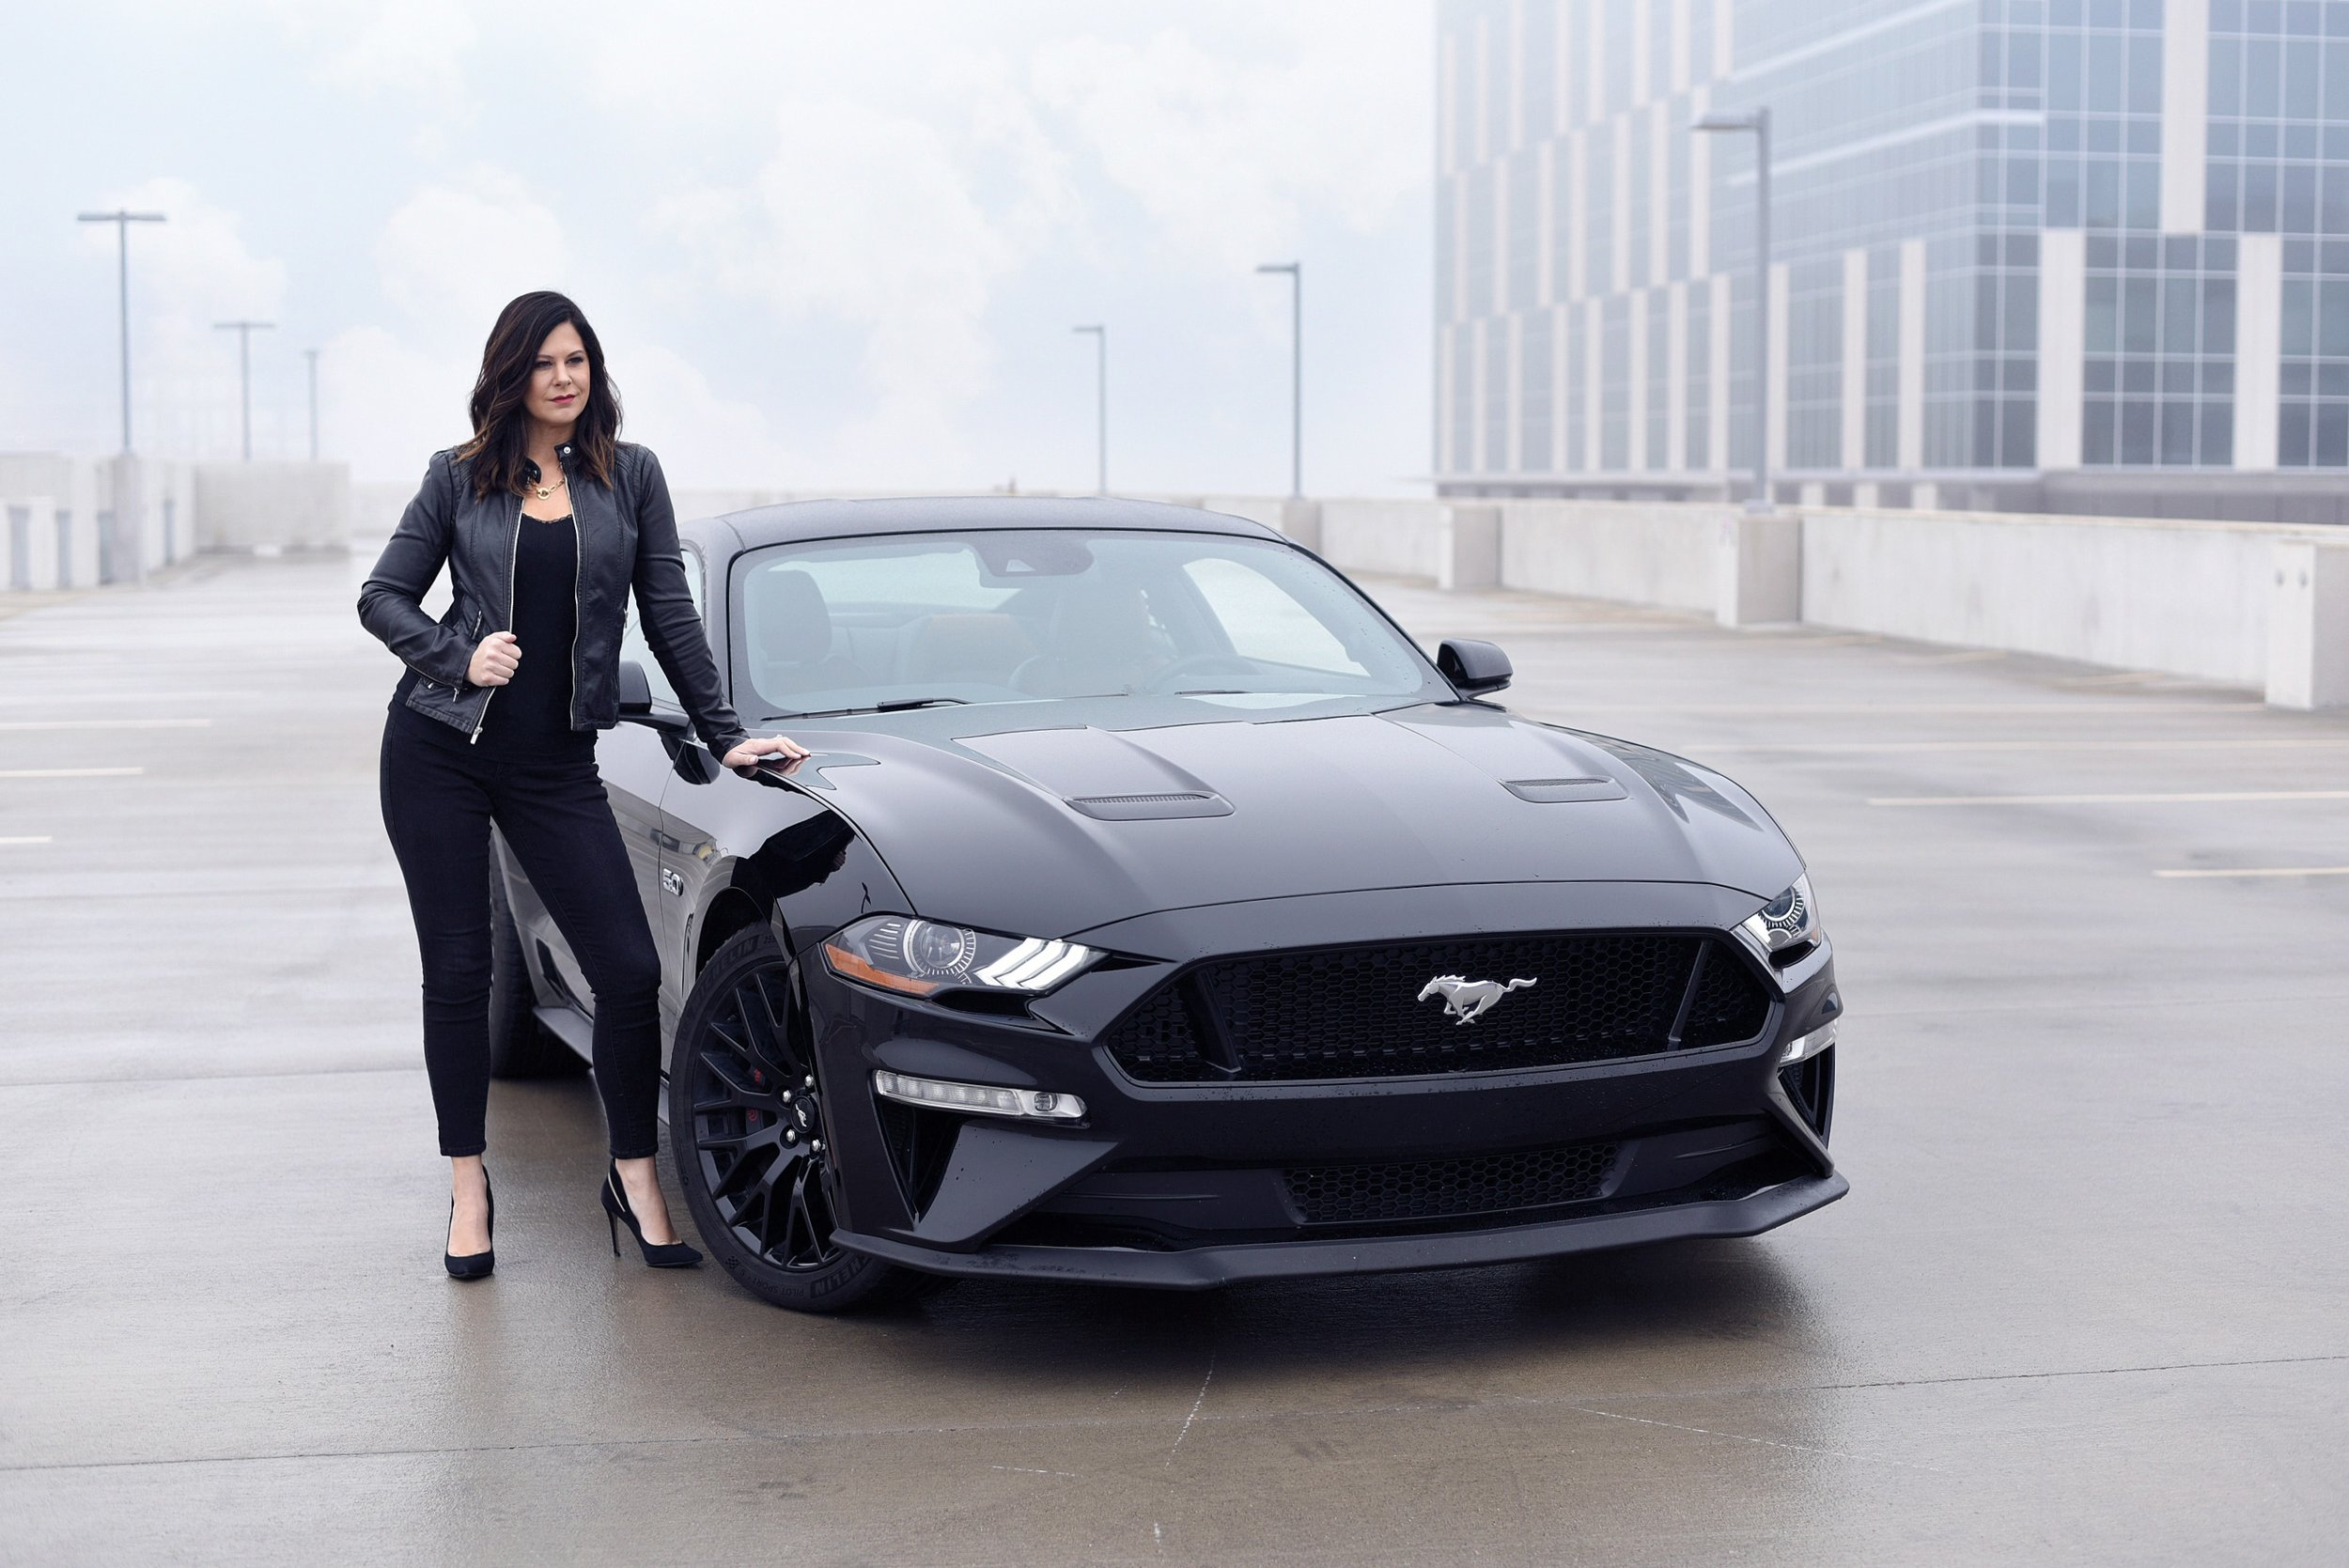 Mustang-Outside-StephanieCarls.jpg